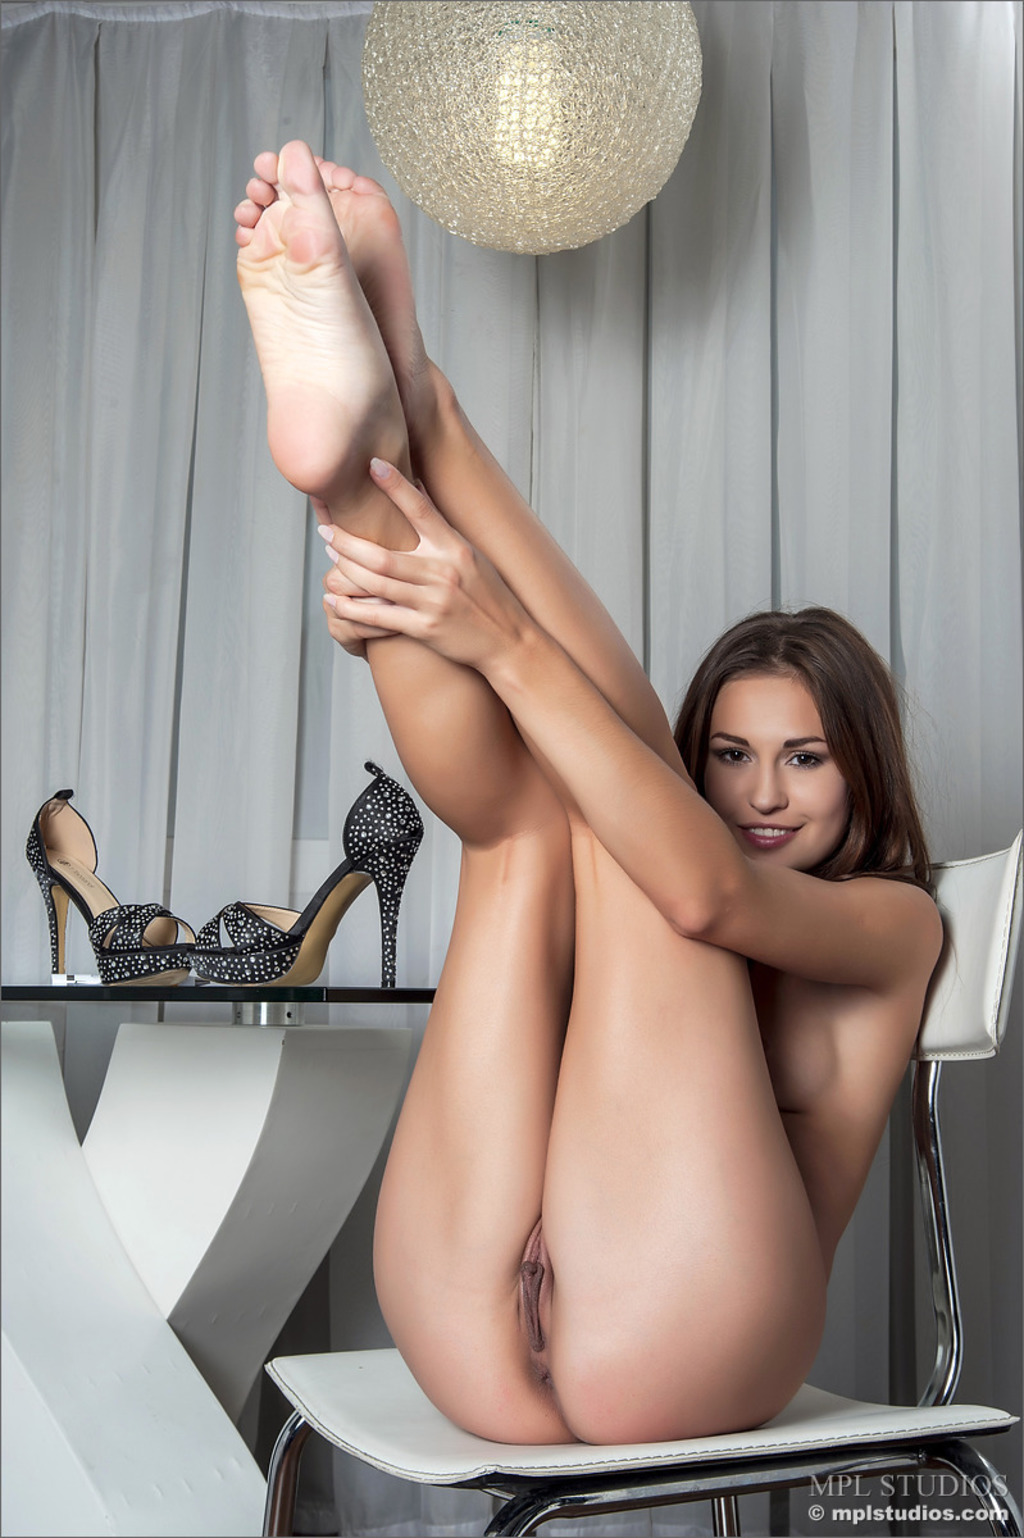 nude-girls-with-legs-up-photo-mix-vol3-15